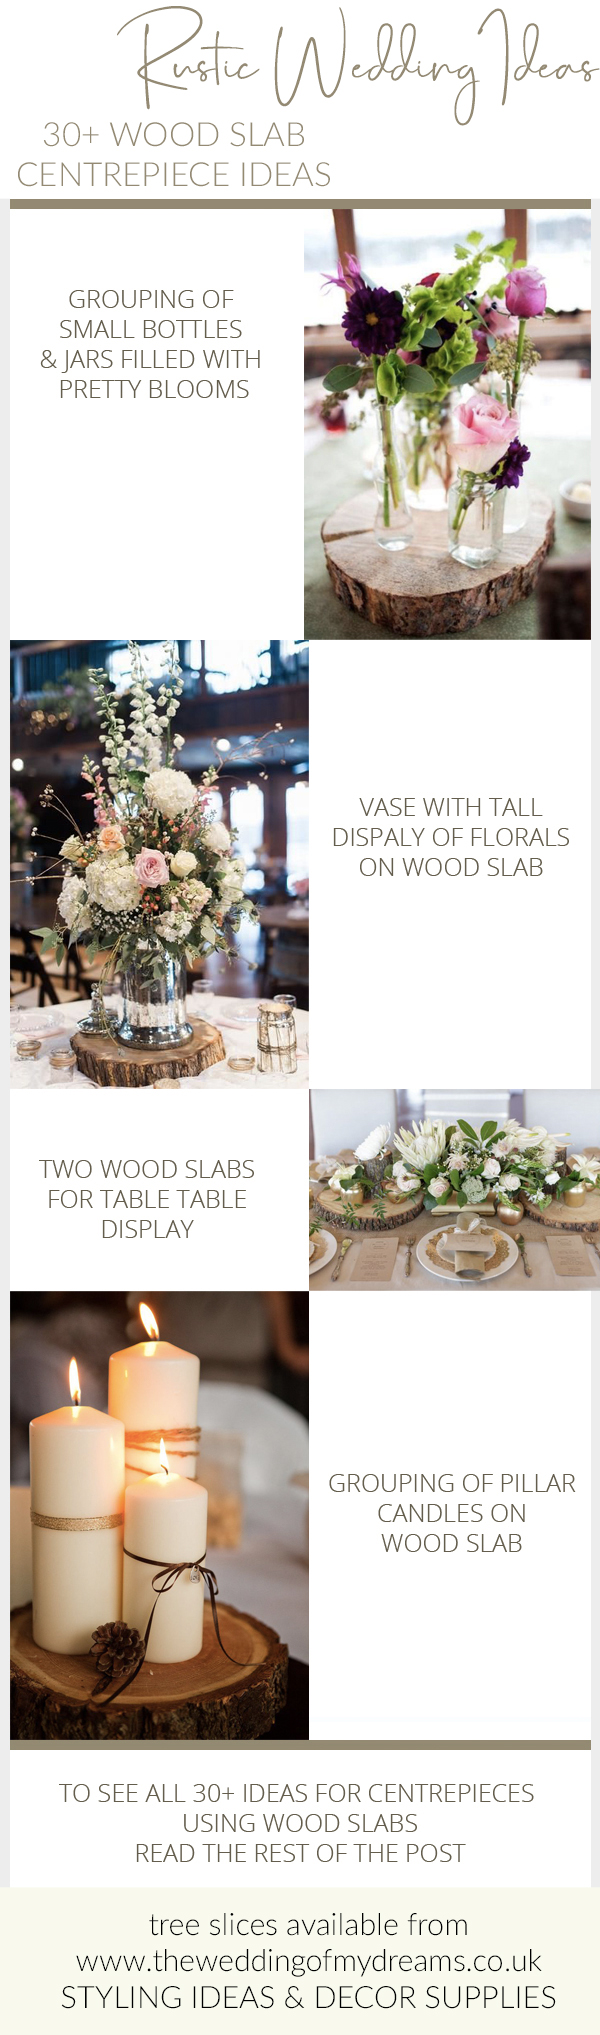 30 ideas for rustic wedding centrepieces tree slabs tree slices